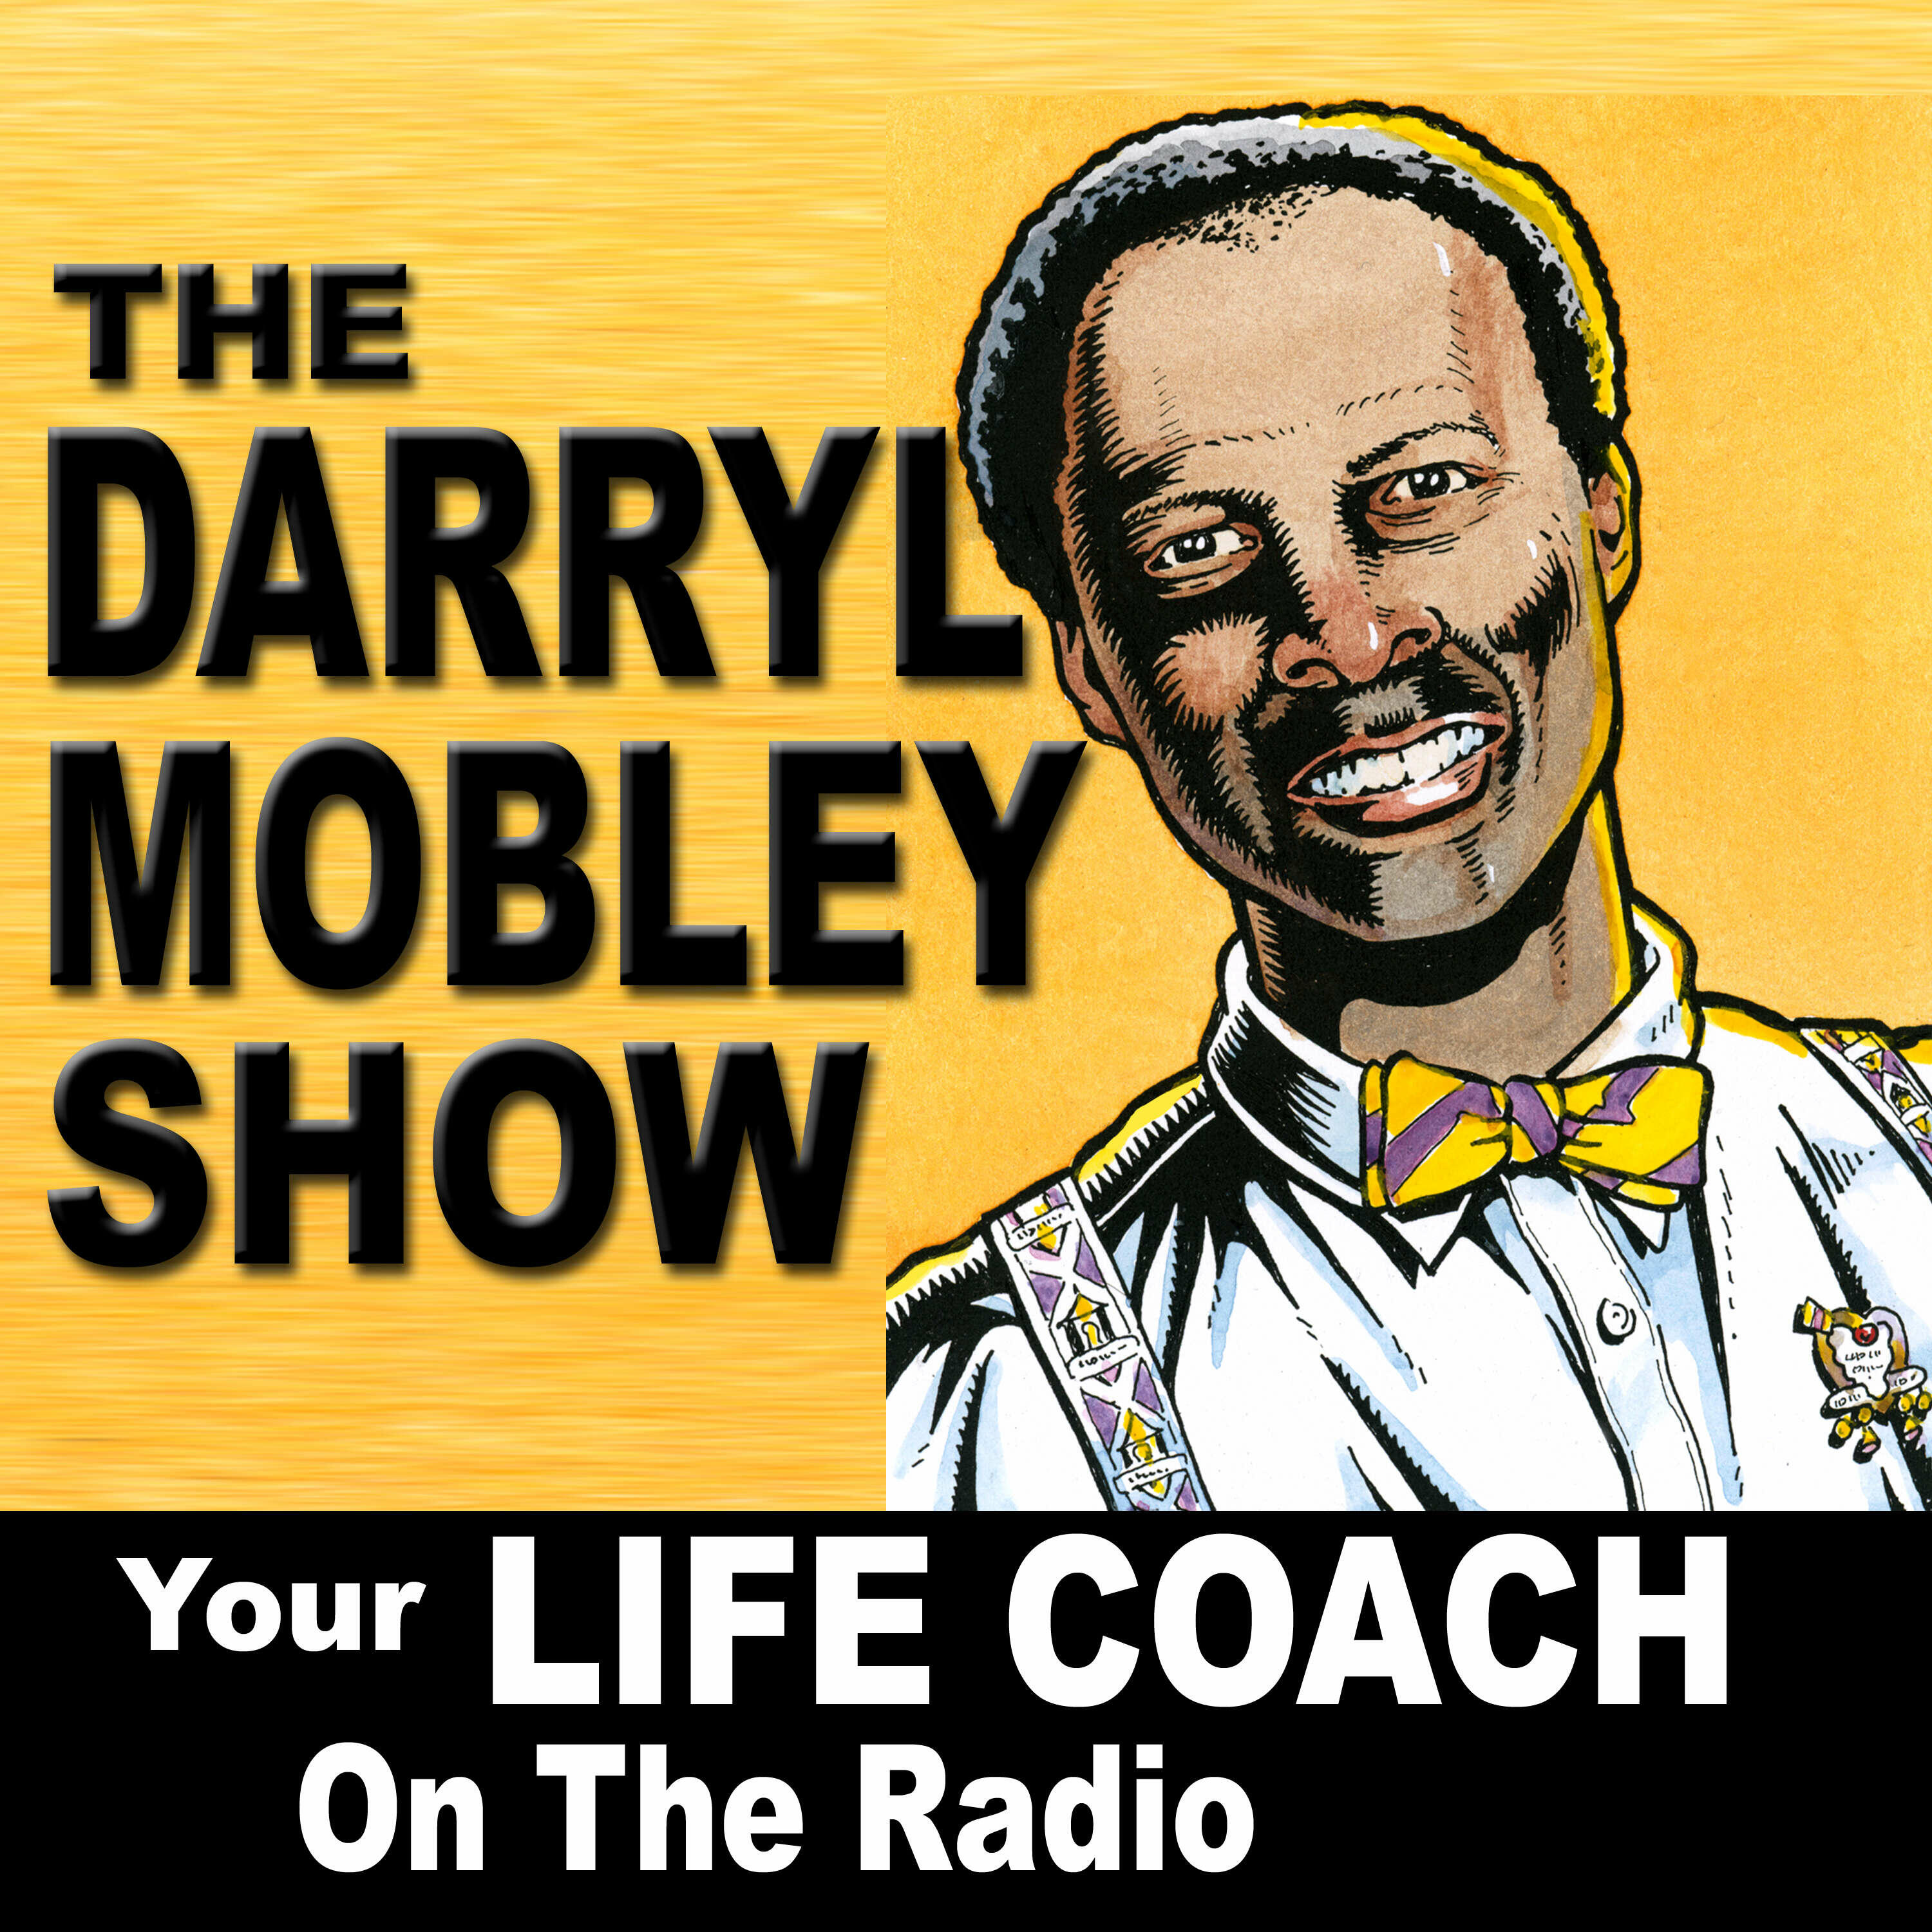 The Darryl Mobley Show: Your Life Coach On The Radio PODCAST